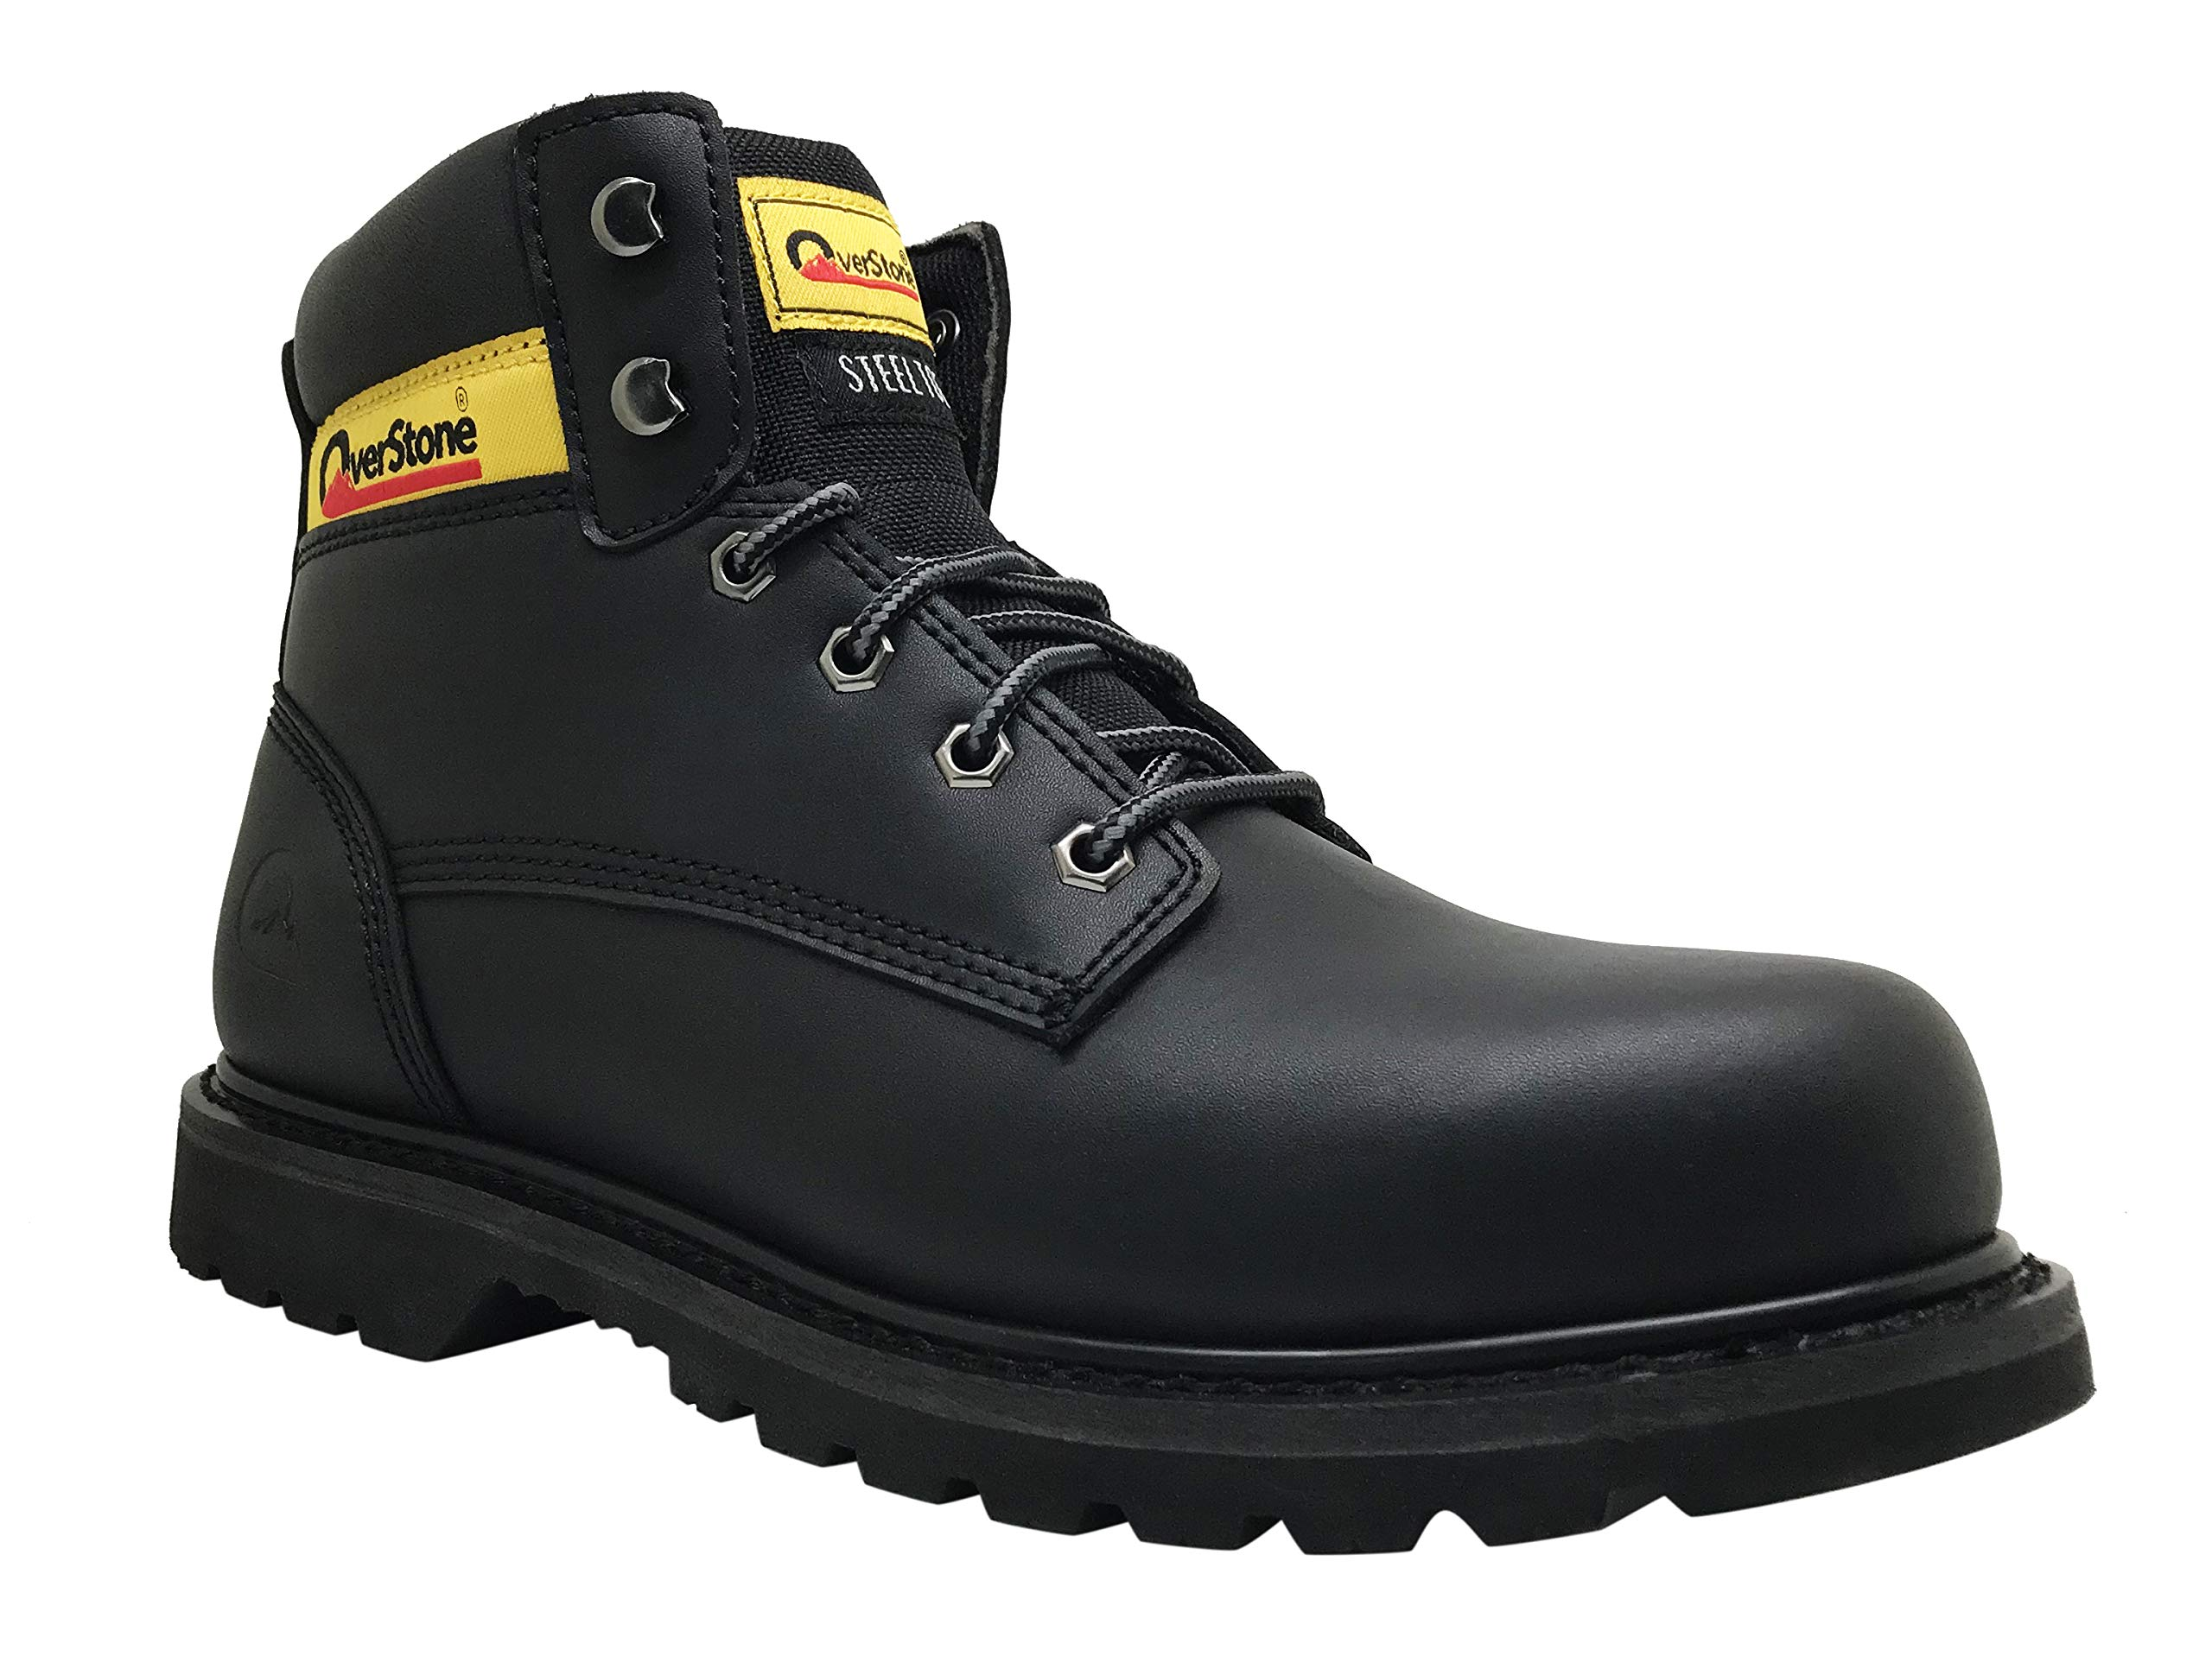 Overstone Men's 6 Inch Leather Work Boots, Steel Toe, Anti-Static, Penetration Resistant Protection, Industrial and Construction Work Boots